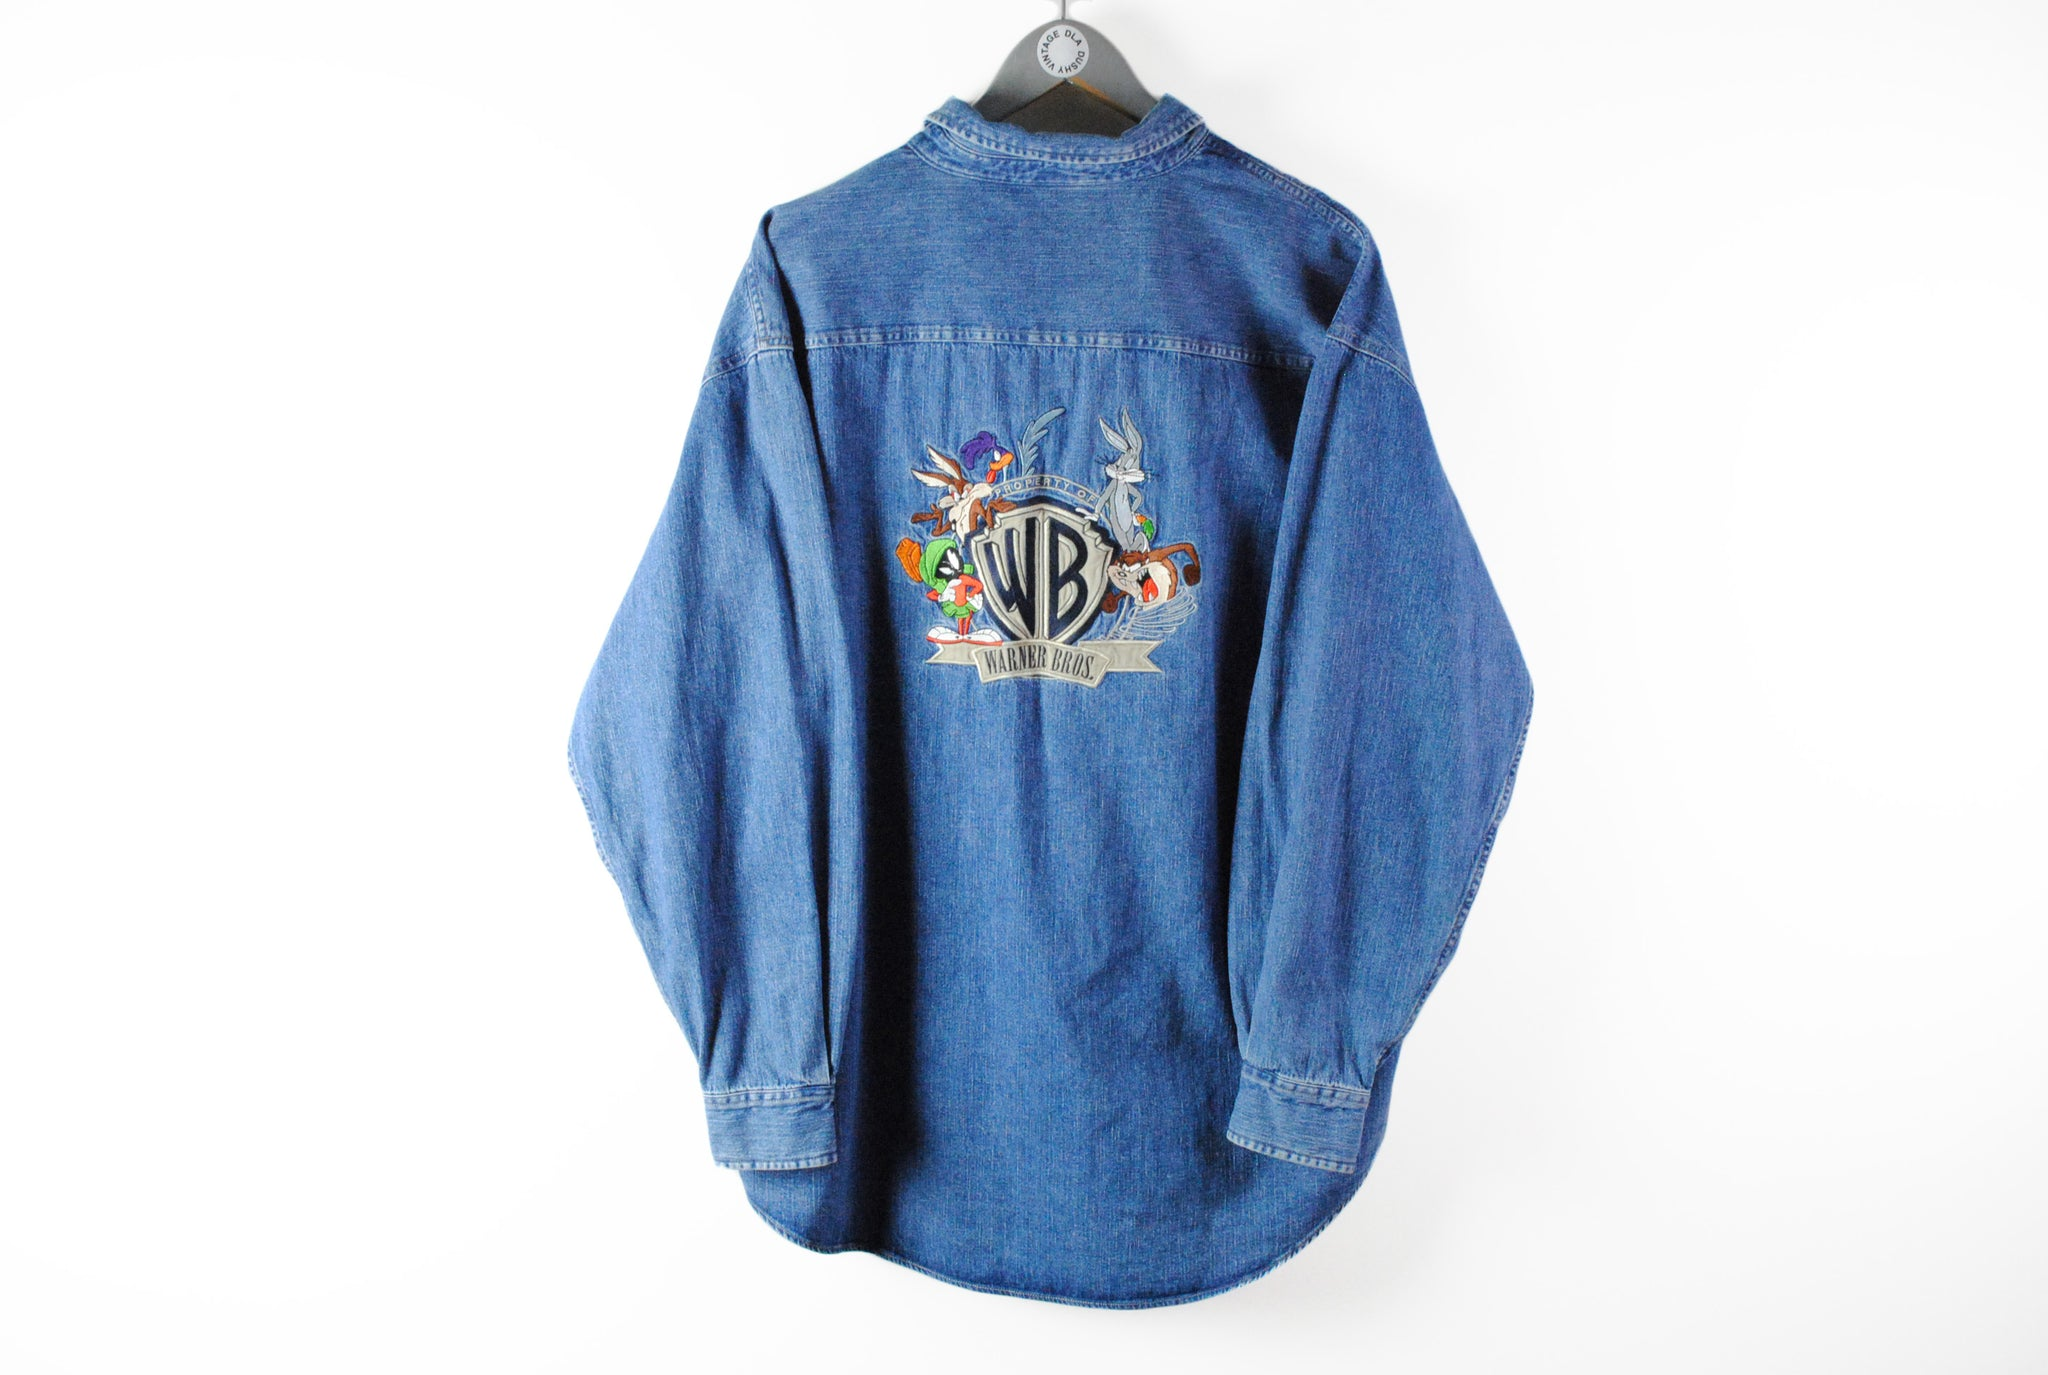 Vintage Warner Bros Denim Shirt XLarge brothers 90s jean shirt long sleeve retro style embroidery logo warner family